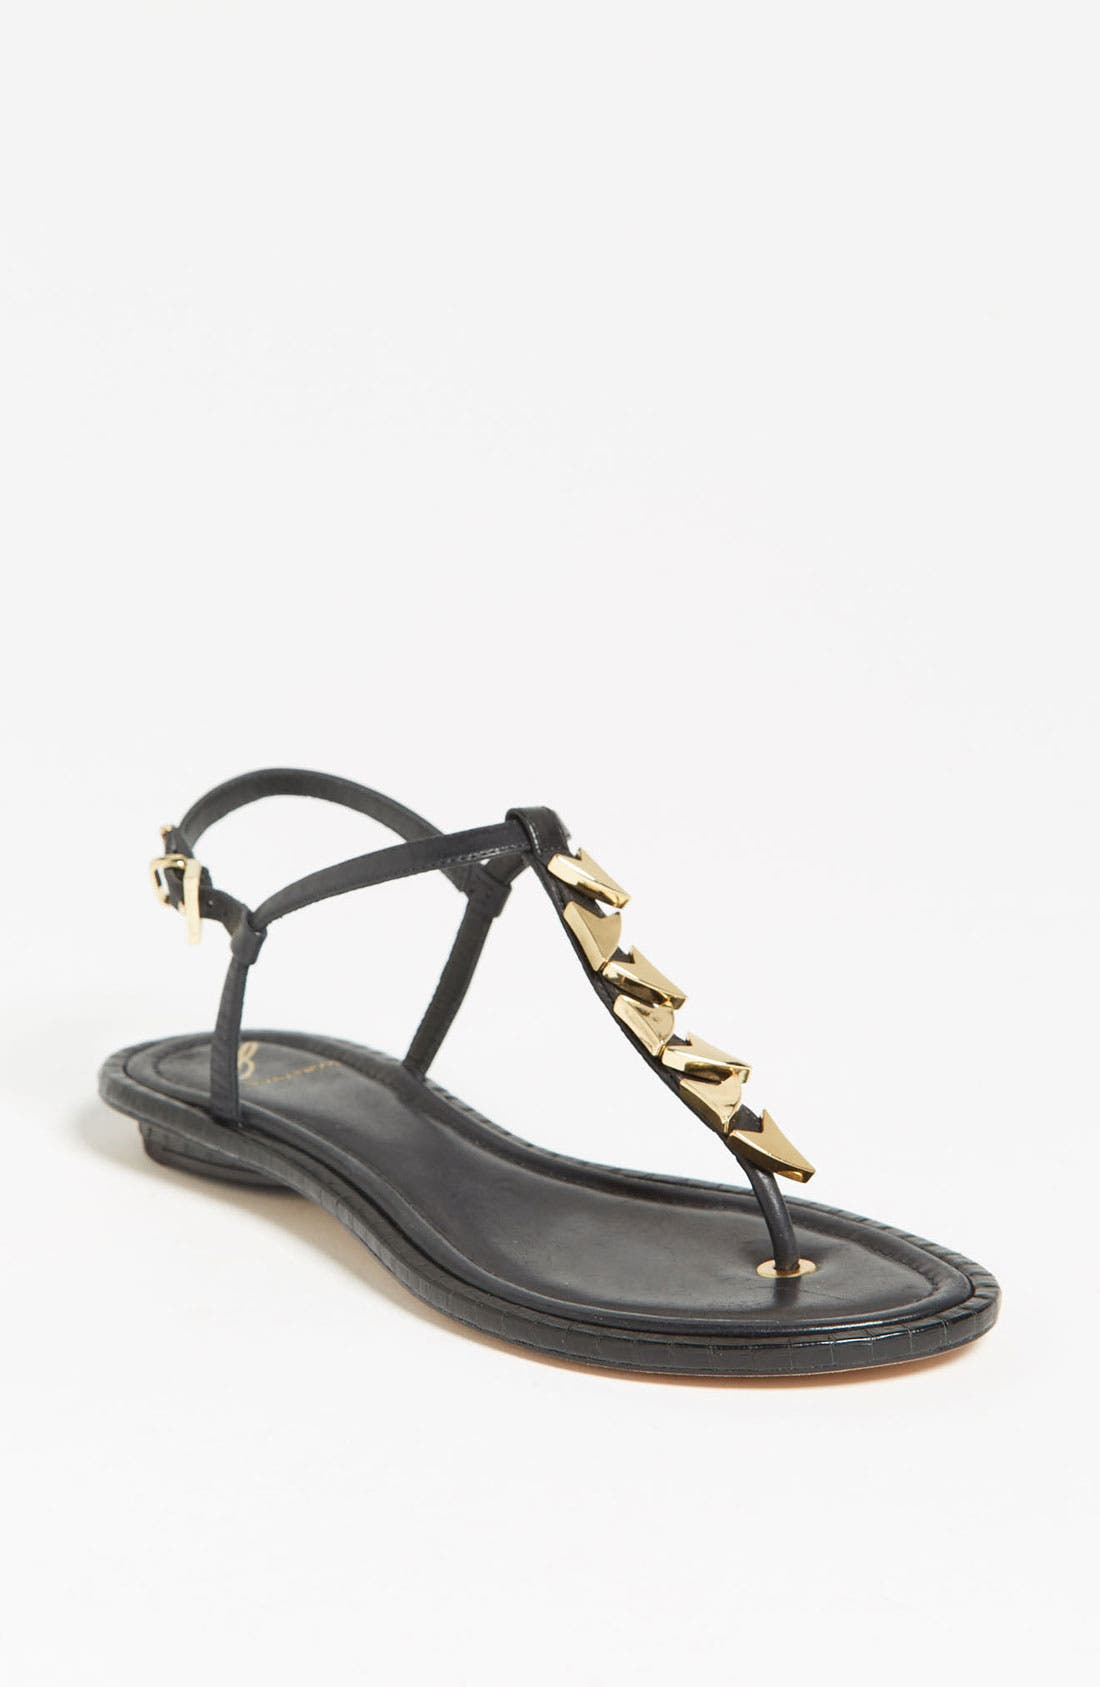 Alternate Image 1 Selected - B Brian Atwood 'Crickett' Sandal